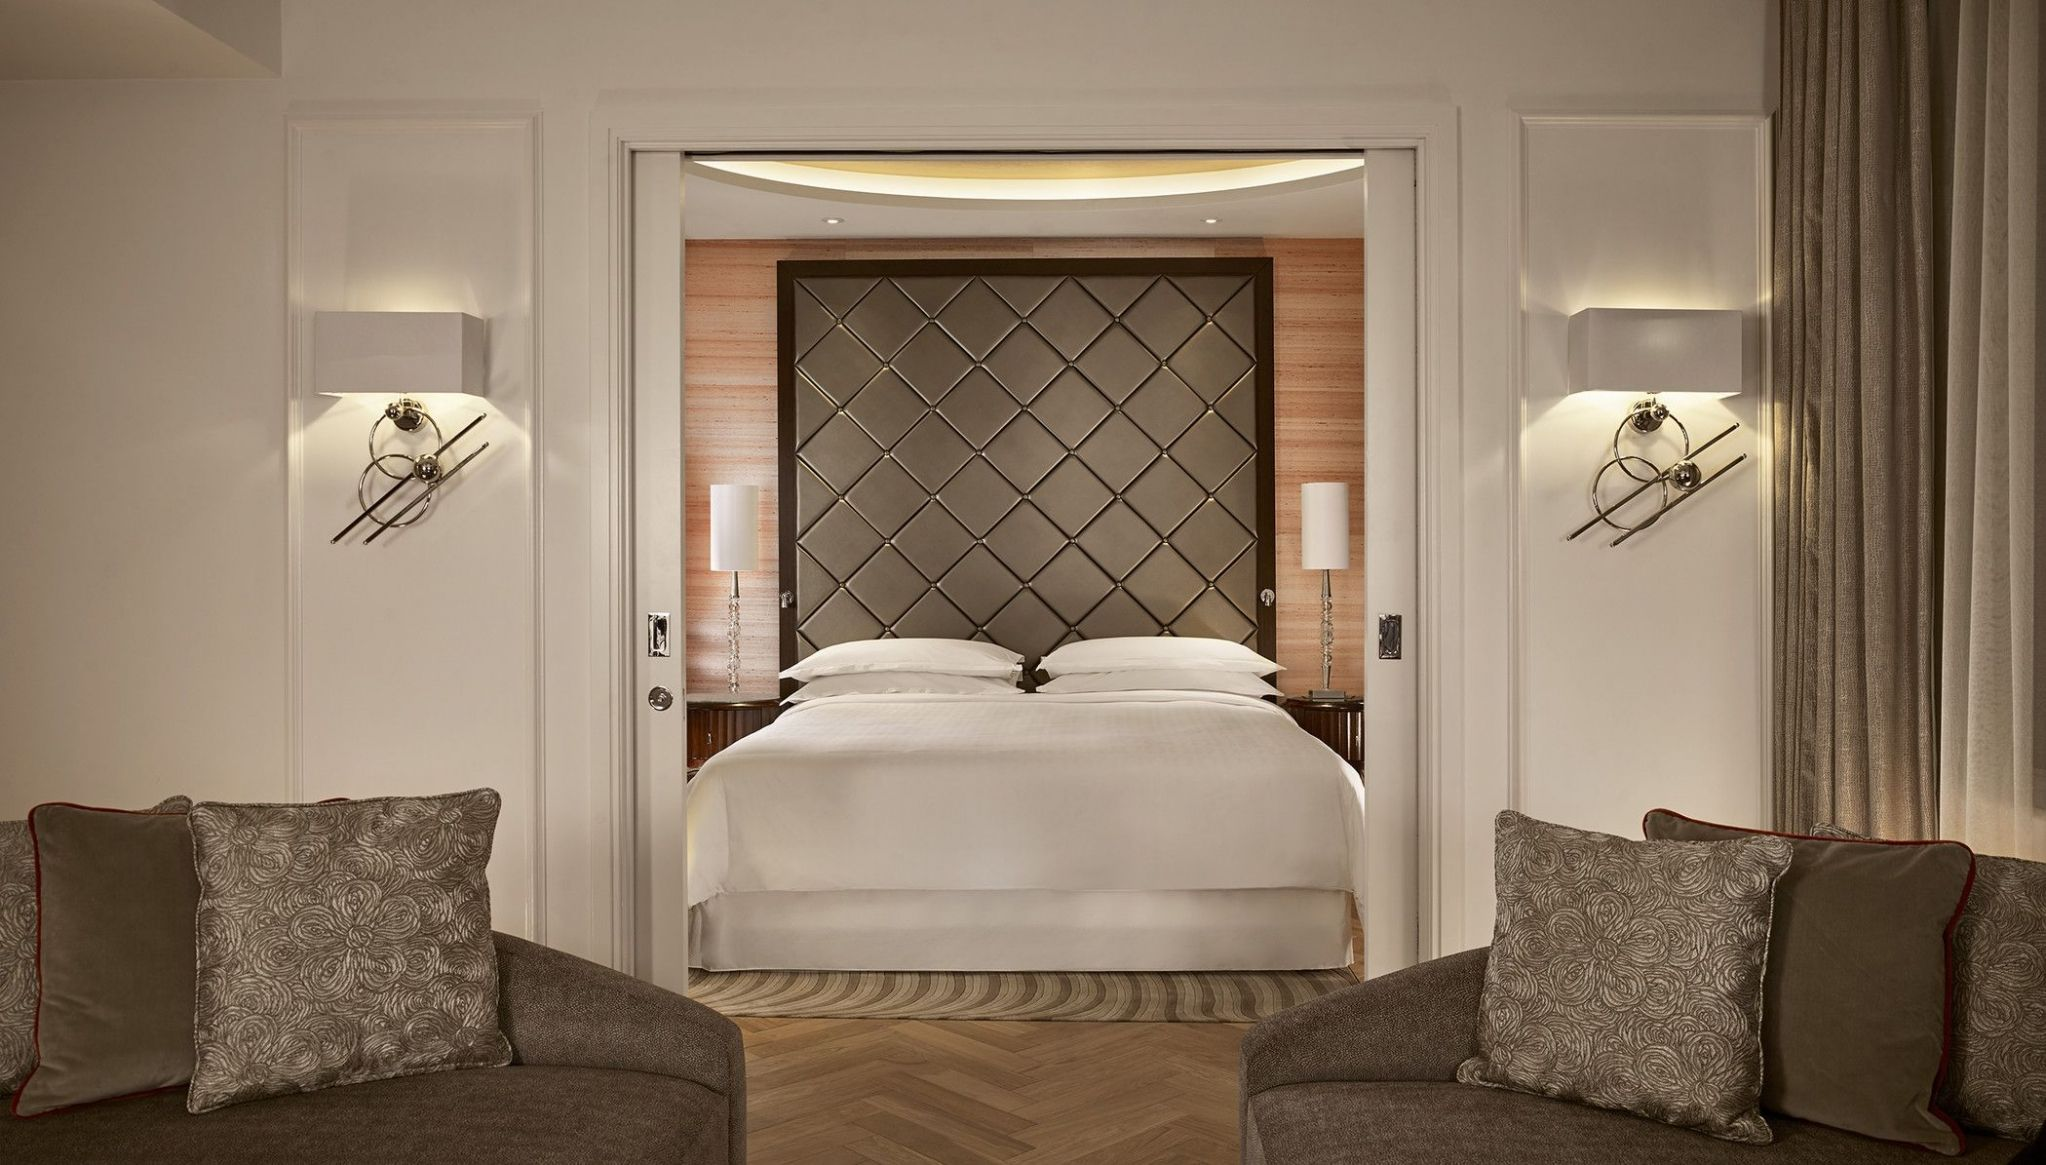 Suites at Sheraton London Park Lane | Official Website | Luxury Suites | Best Rates, Guaranteed